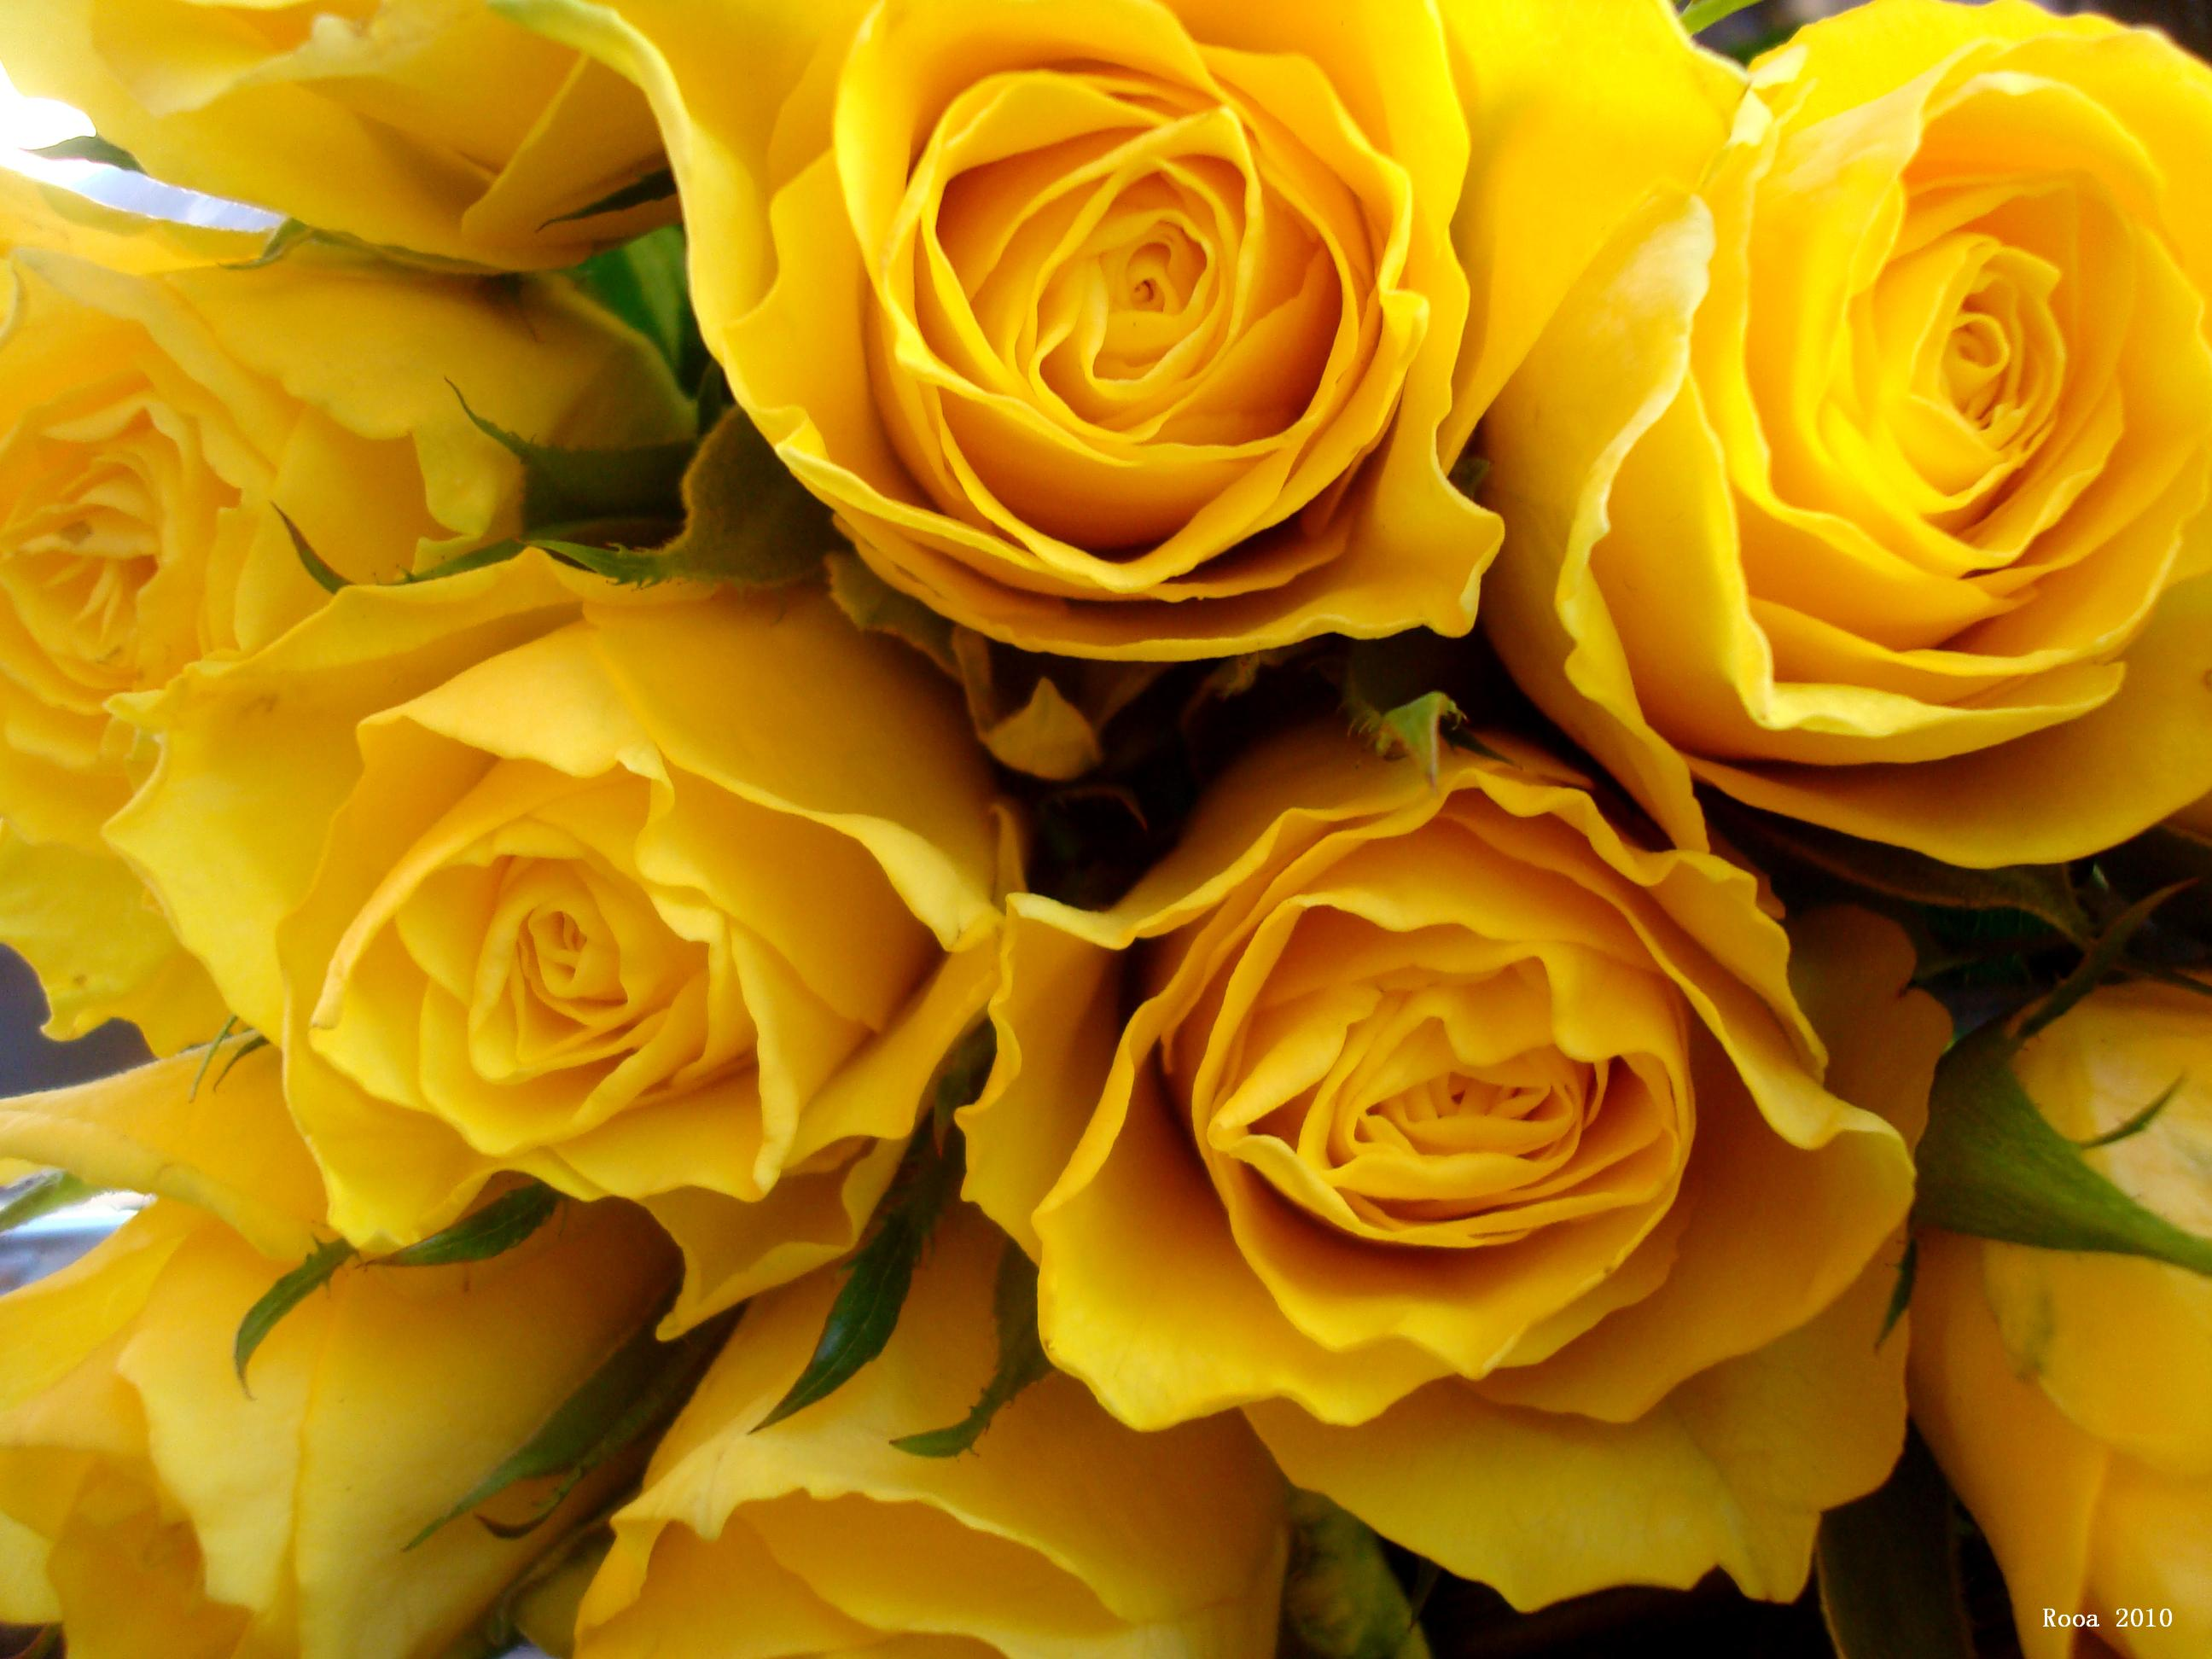 Hd wallpaper yellow flowers - Yellow Rose Wallpapers High Quality Free